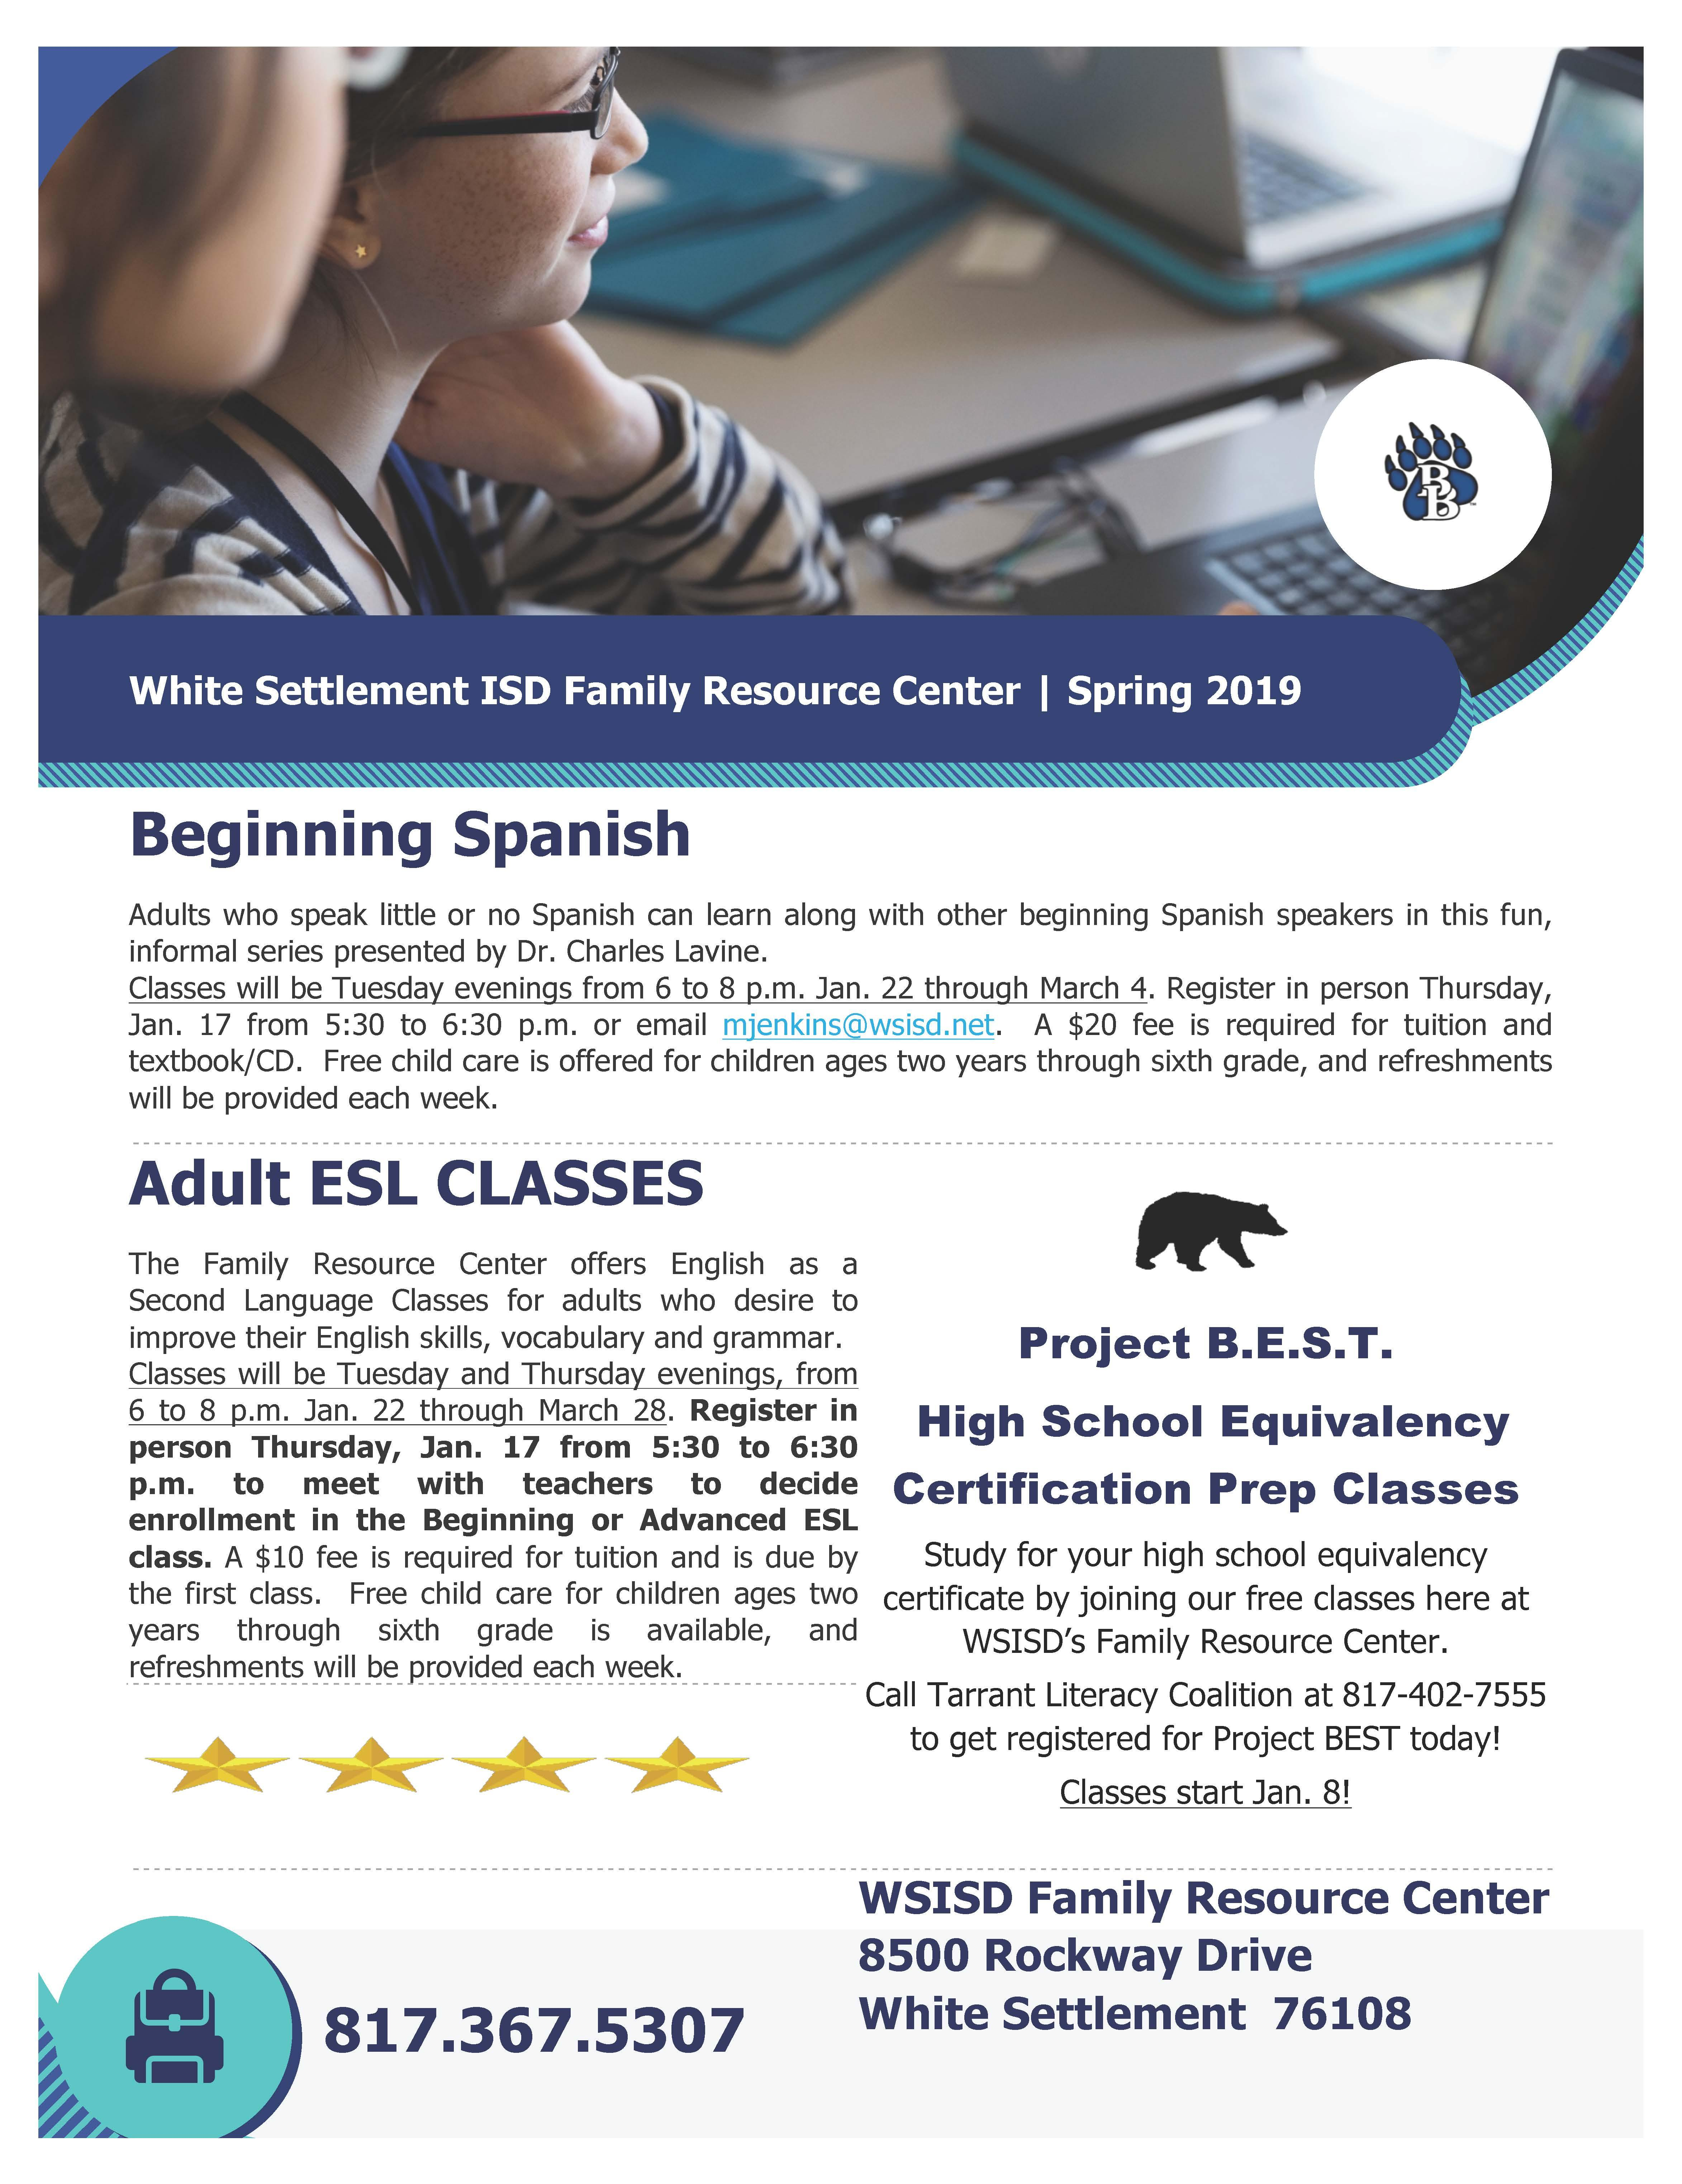 WSISD Family Resource Center Offering Beginning Spanish, Adult ESL & High School Equivalency Classes